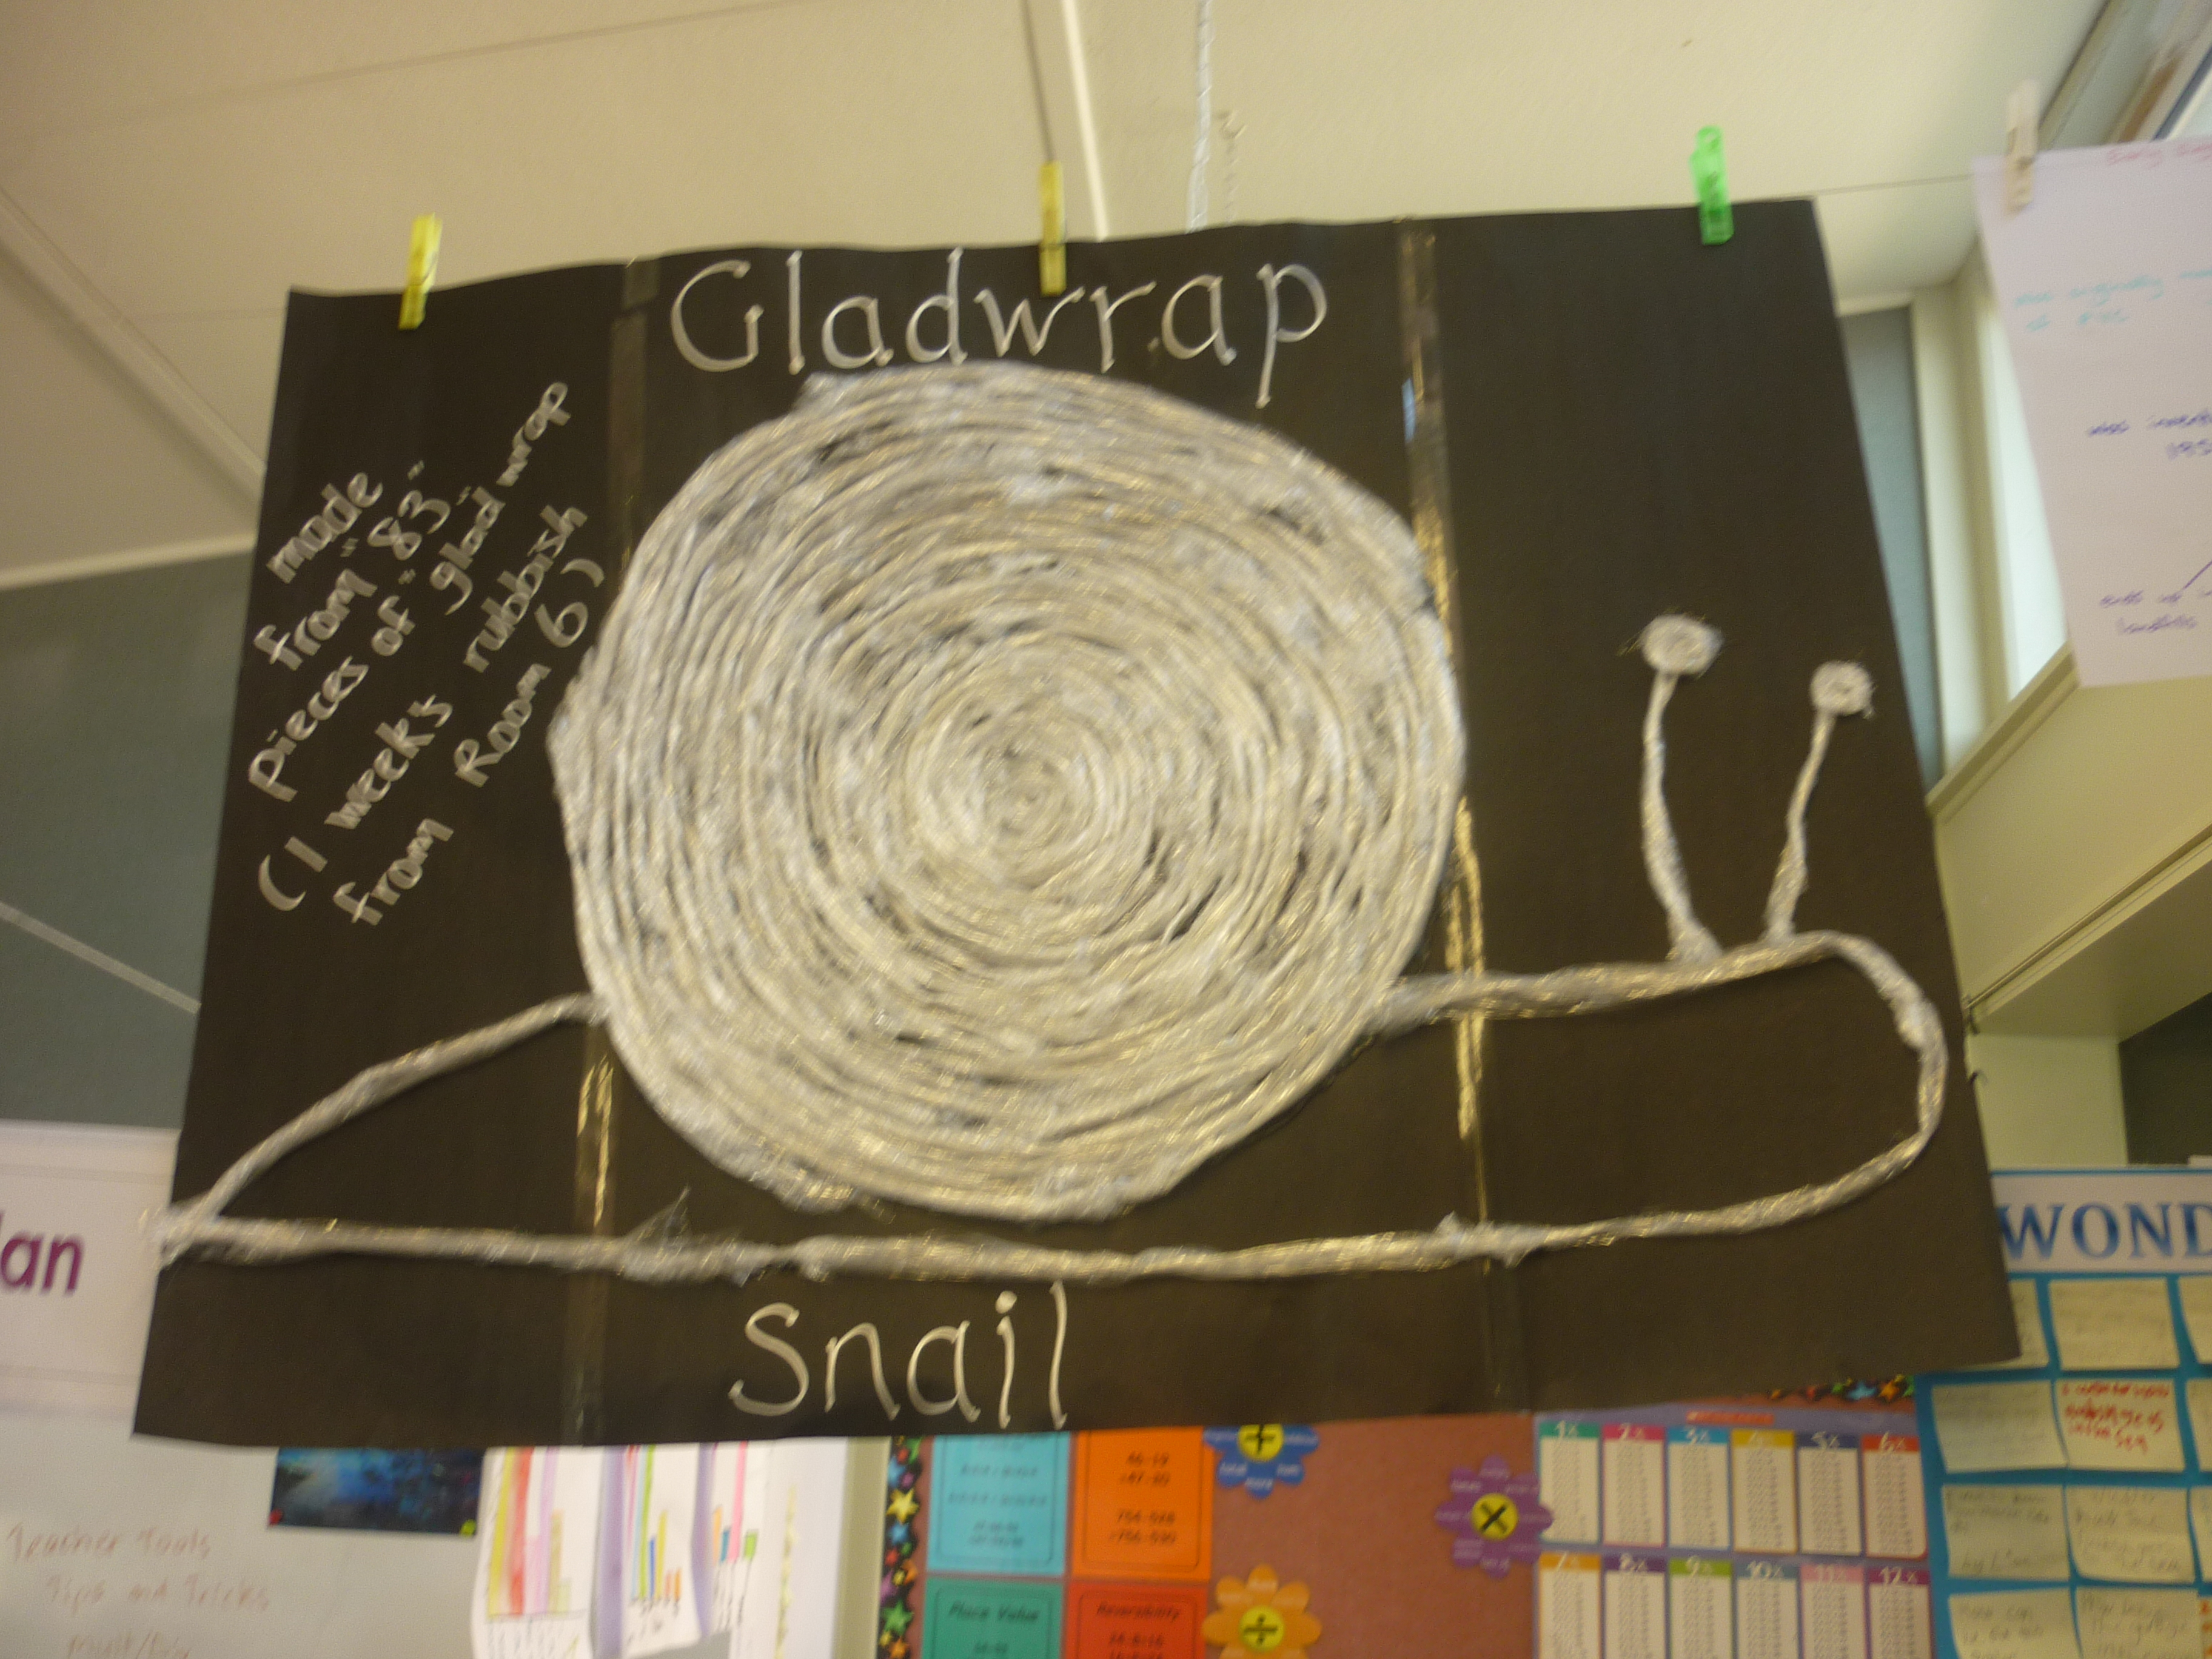 Room 6's (Waverley Park) Gladwrap Snail made from 1 weeks glad-wrap (83 pieces)